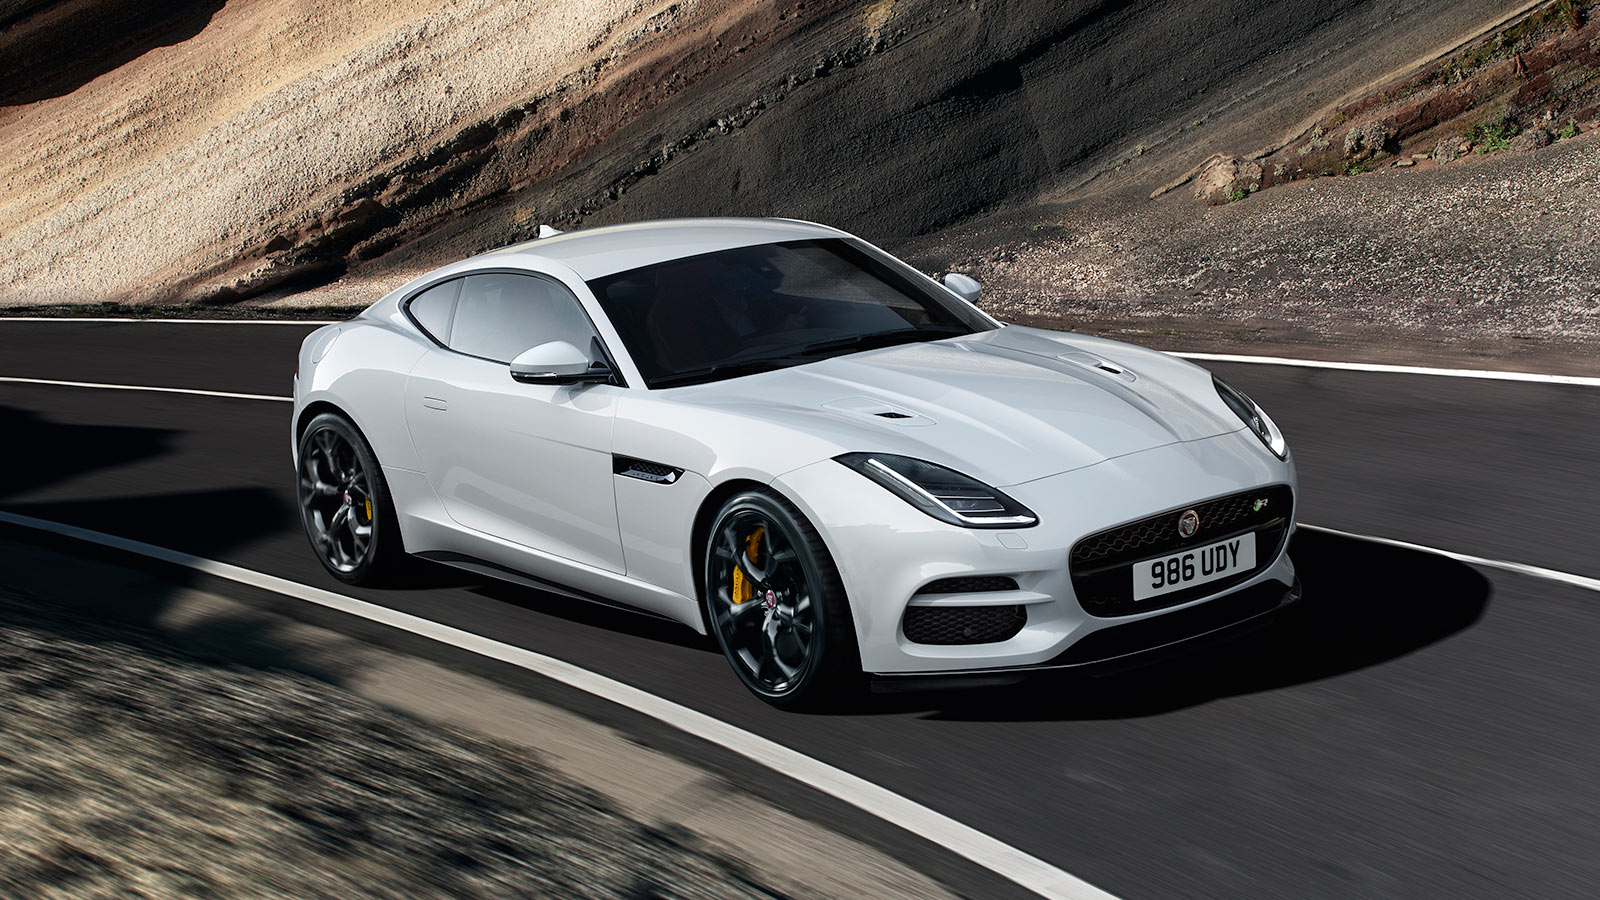 Jaguar F-TYPE 3.0 (380) S/C V6 Chequered Flag AWD SPECIAL EDITIONS image 3